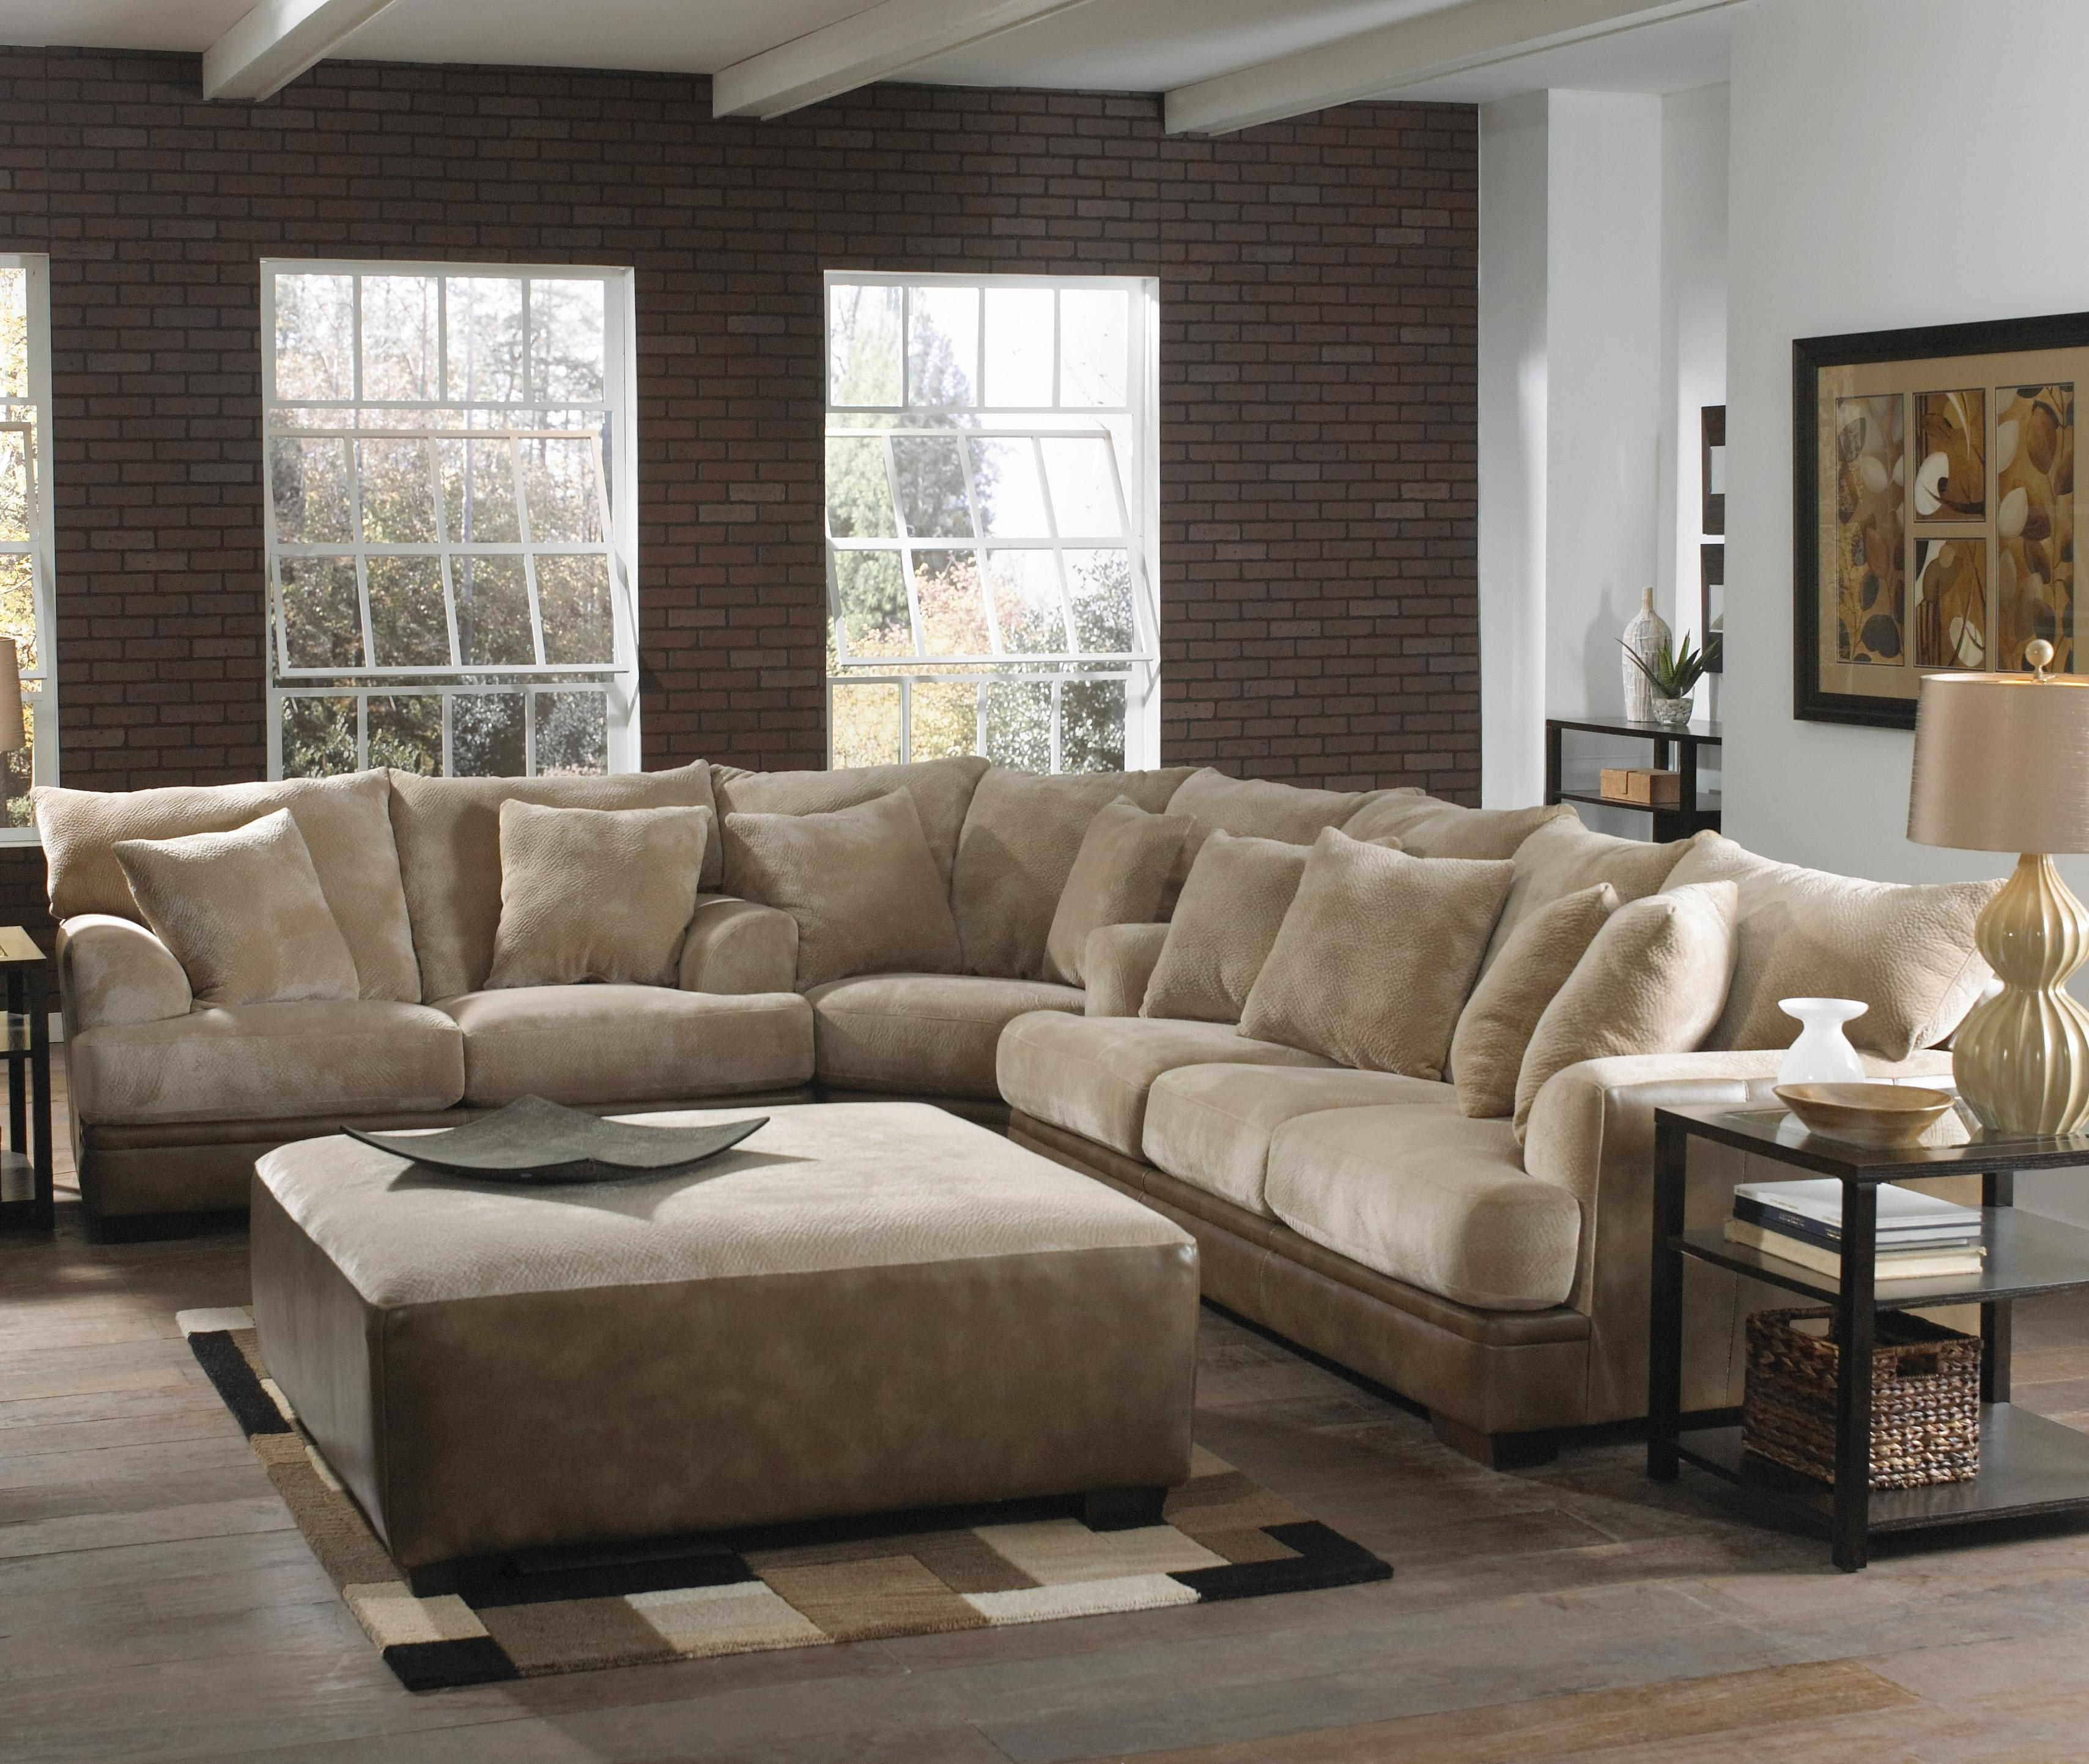 Kijiji Ottawa Sectional Sofas Throughout Well Known Furniture : Family Room Sectional Sofa Novogratz Vintage Tufted (Gallery 16 of 20)